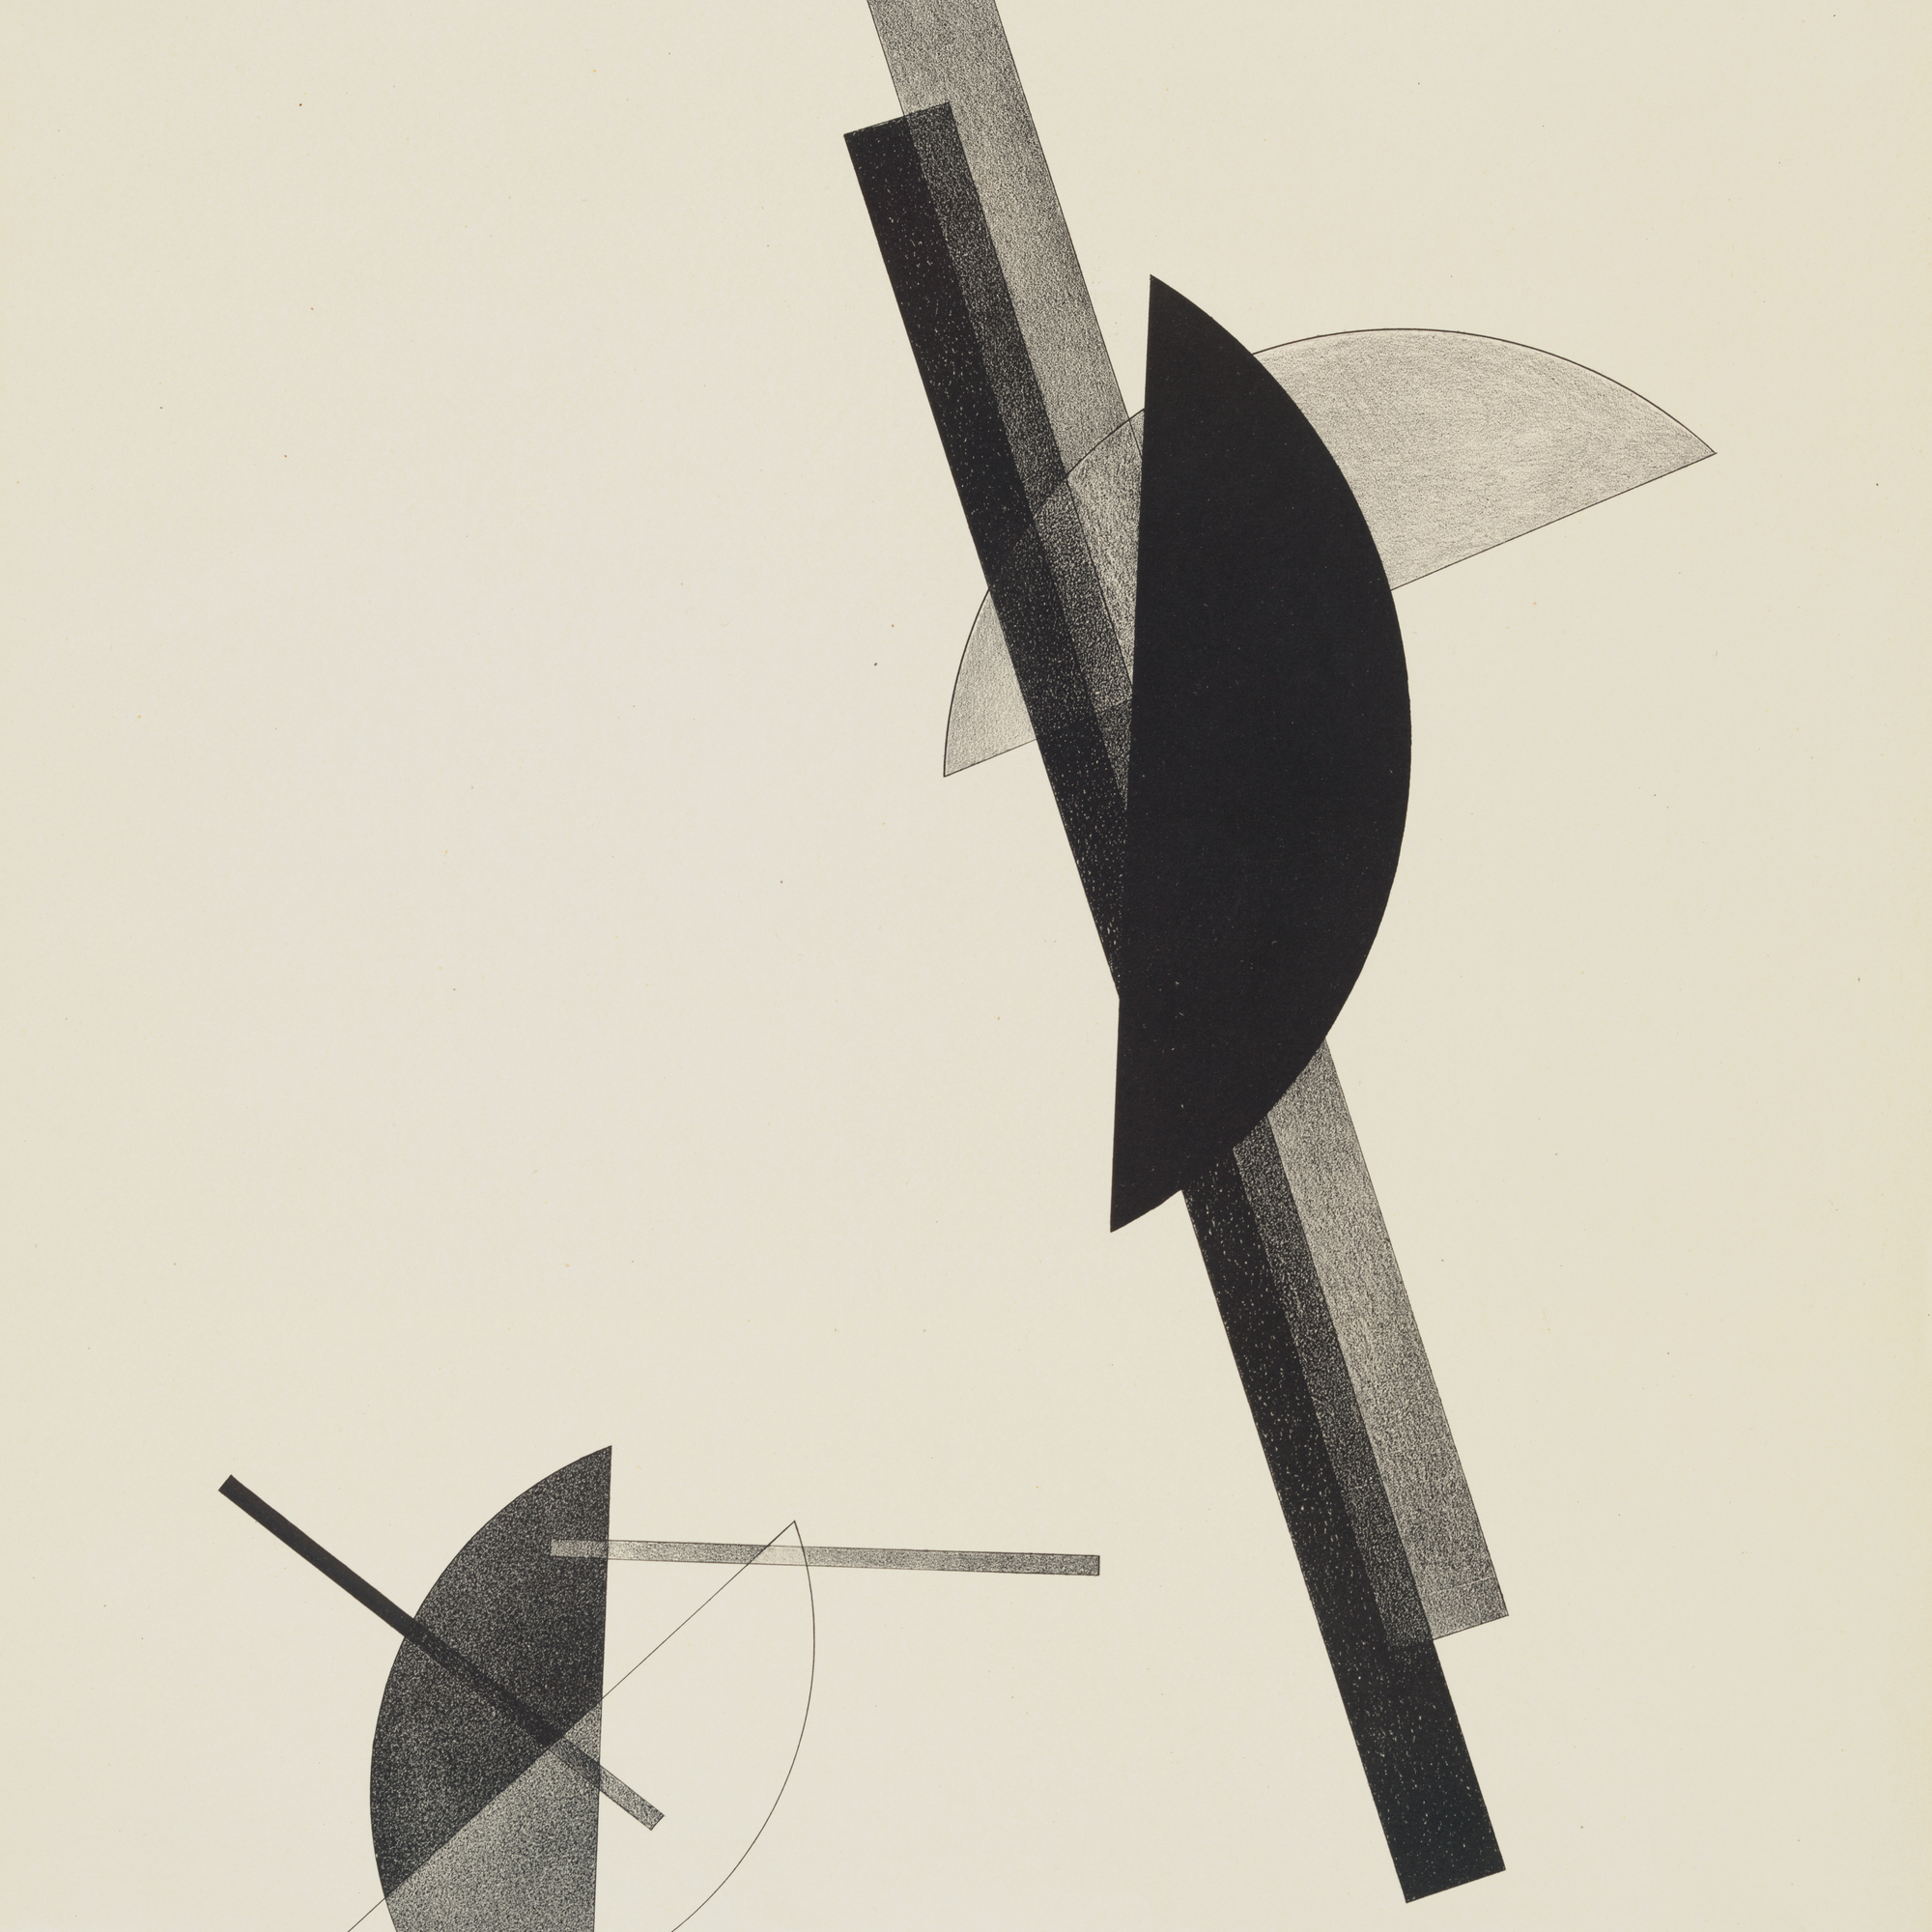 László Moholy-Nagy. Untitled, from Constructions. 1923. Lithograph, sheet: 23 9/16 × 17 5/16″ (59.8 × 44 cm). Publisher: Eckart von Sydow and Verlag des Buchhändlers Ludwig Eye, Hannover, Germany. Printer: Leunis & Chapman, Hannover, Germany. Edition: 50. The Museum of Modern Art. Acquired through the publisher. © 2008 Artists Rights Society (ARS), New York/VG Bild-Kunst, Bonn